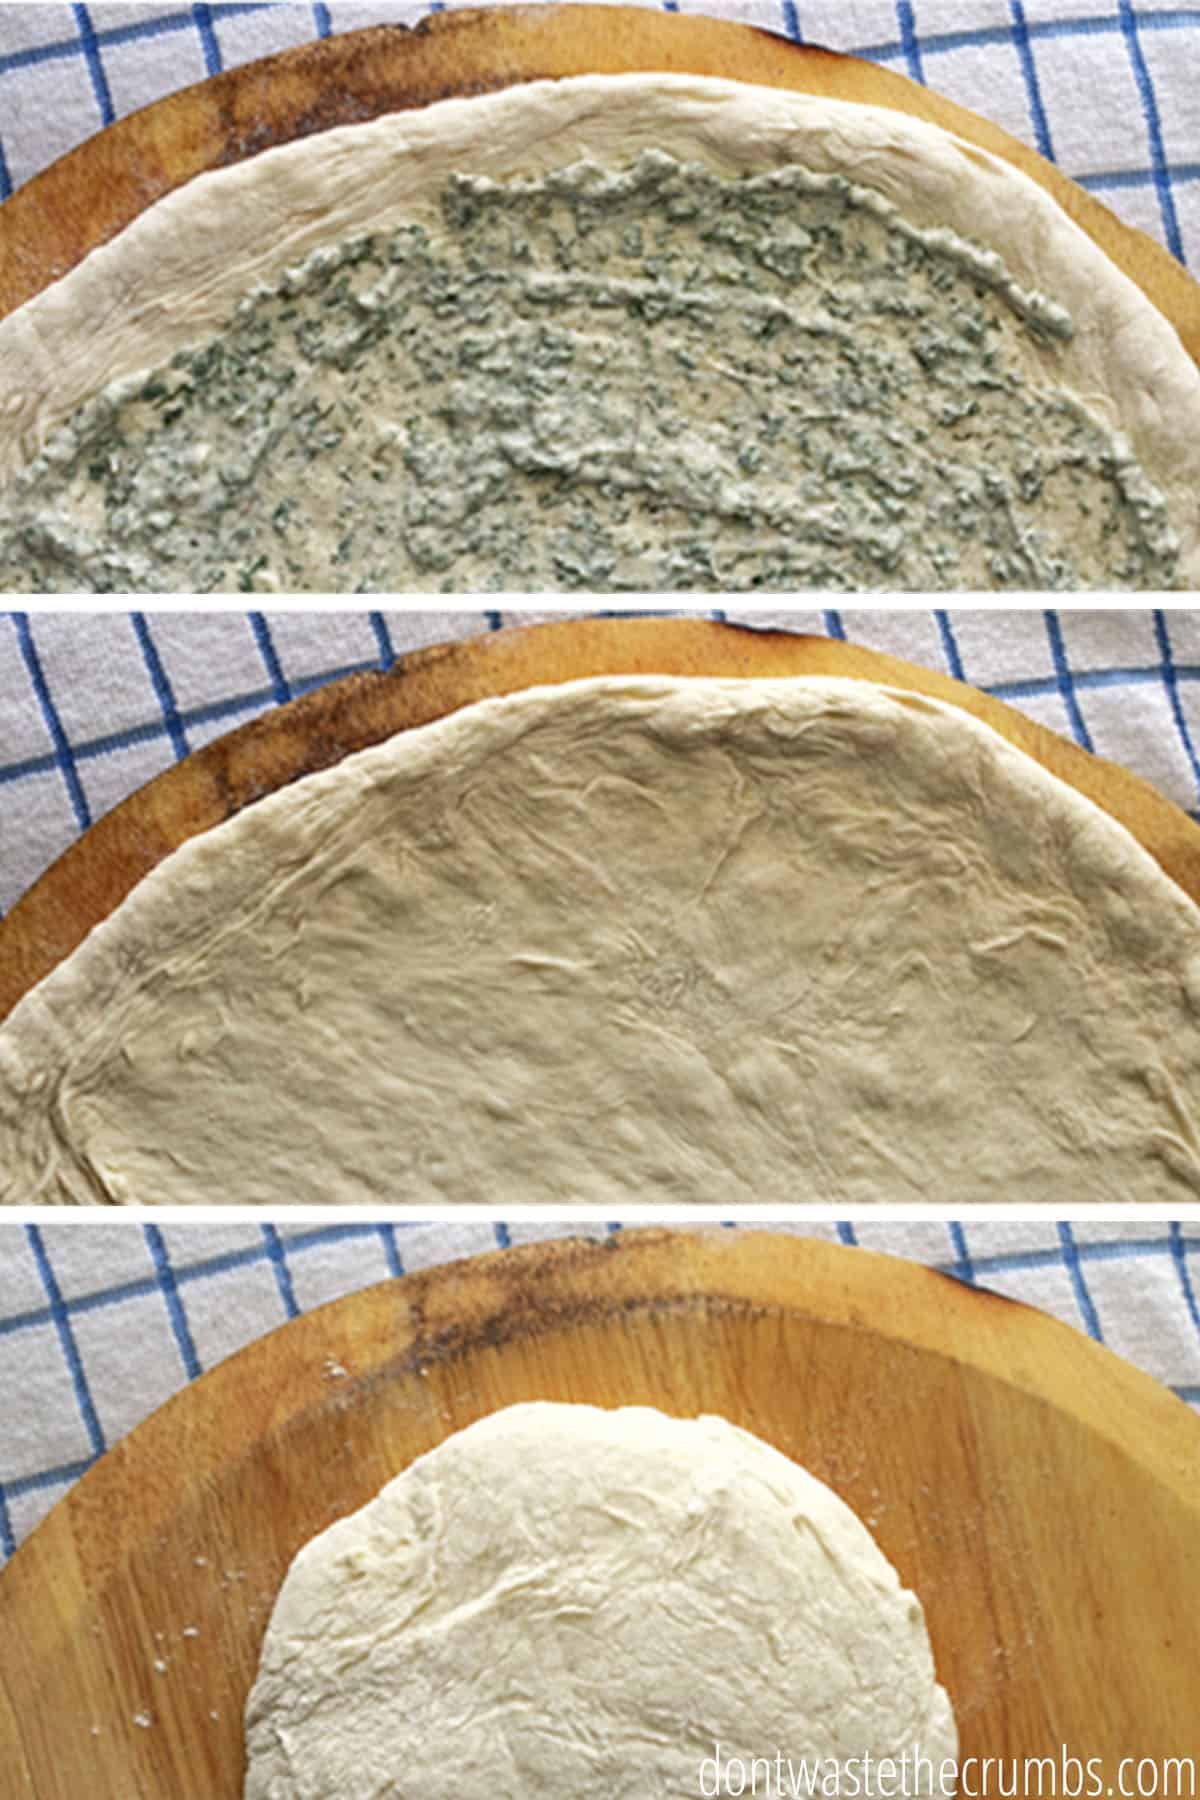 Rolled pizza dough on a pizza stone with homemade blue cheese dressing spread all over.